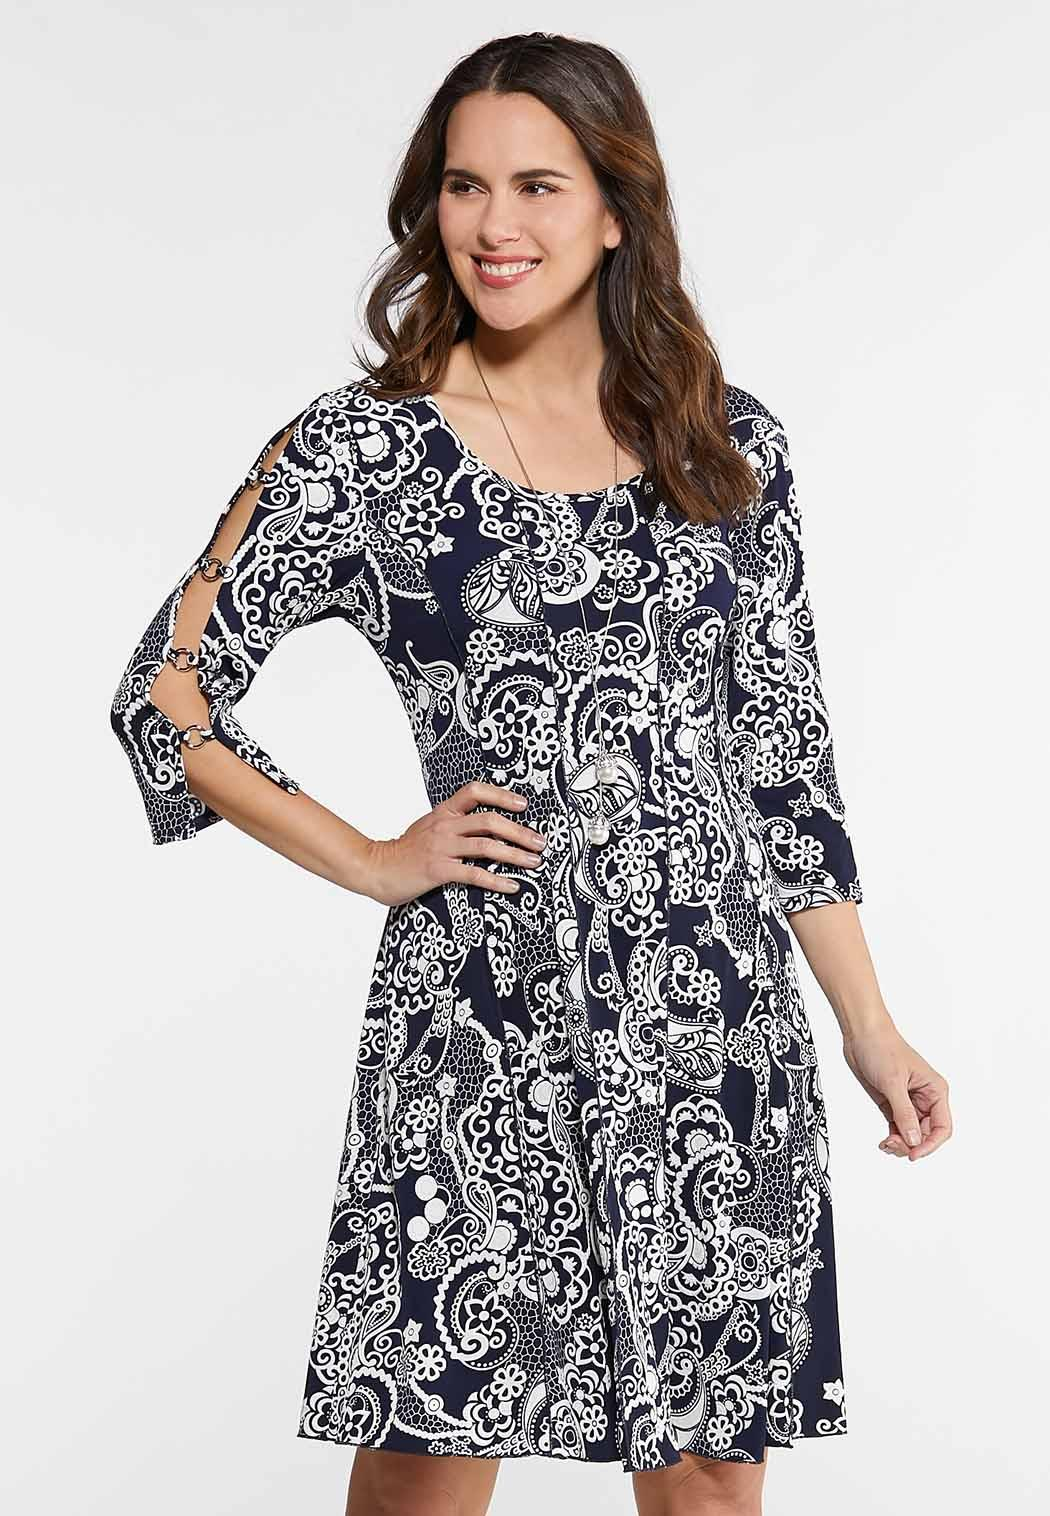 69aadc1e09a Women s Dresses sizes 2-28 - Spring Dresses